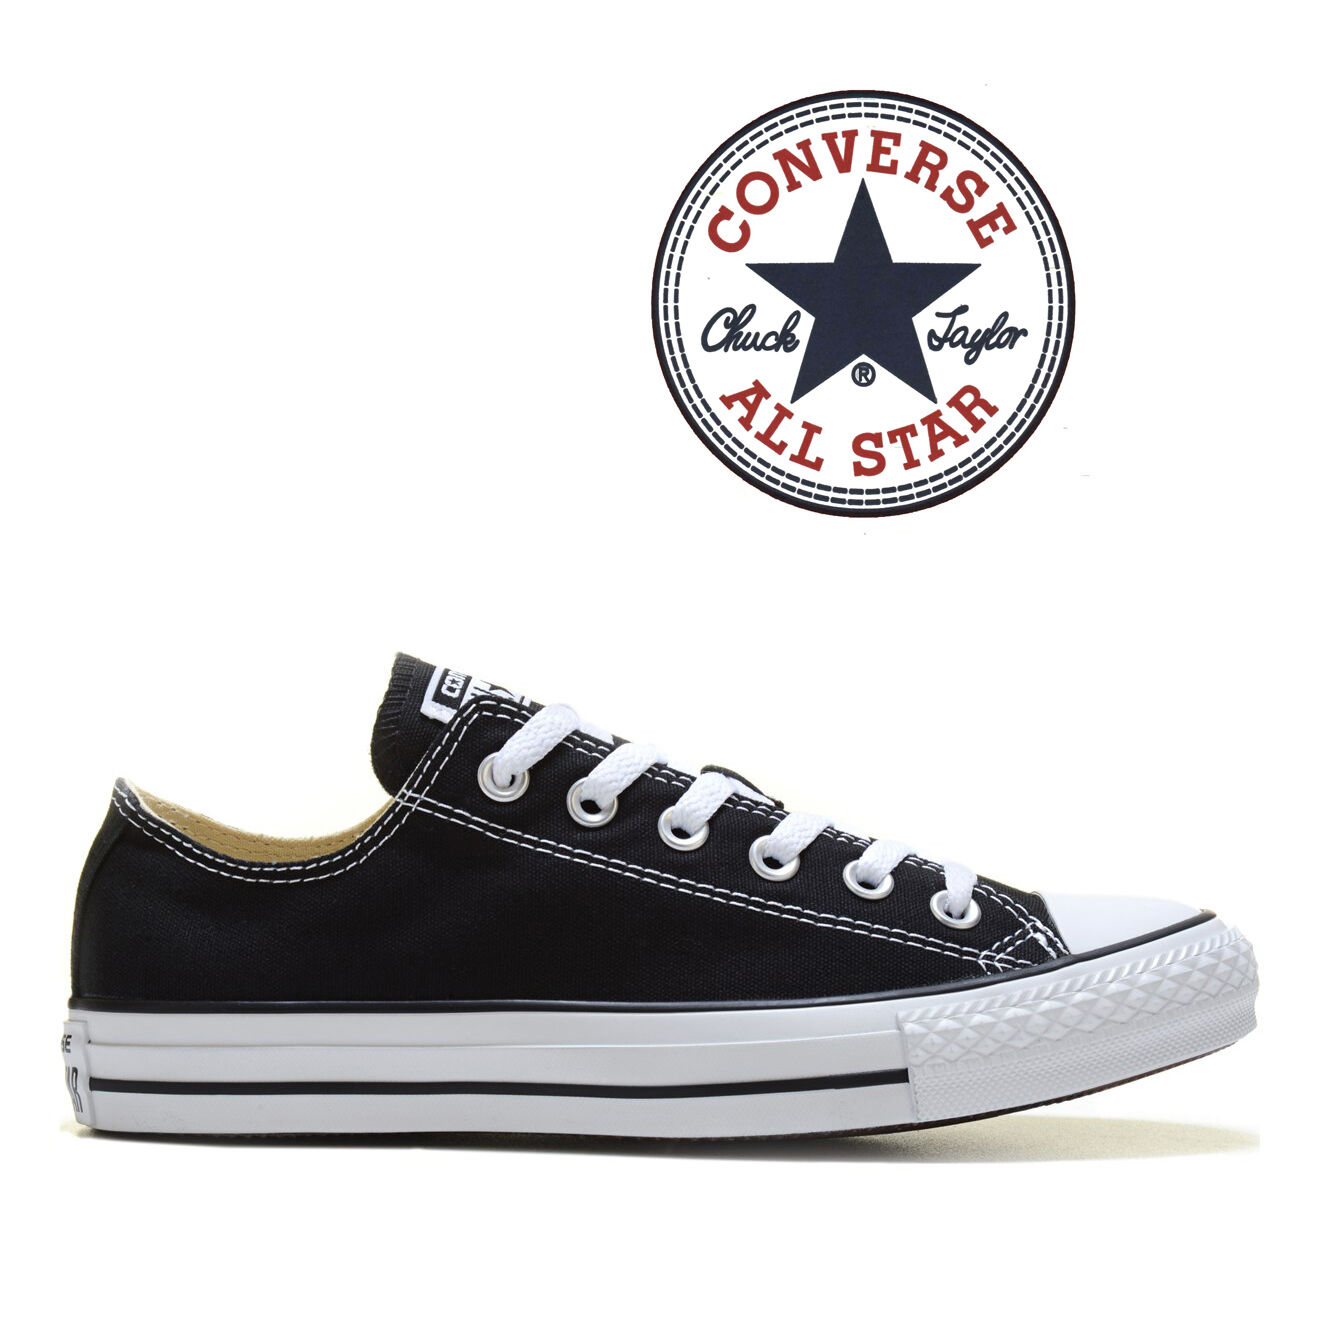 Details about Mens Converse Chuck Taylor All Star Low Top Canvas Fashion Sneaker Black All SZs